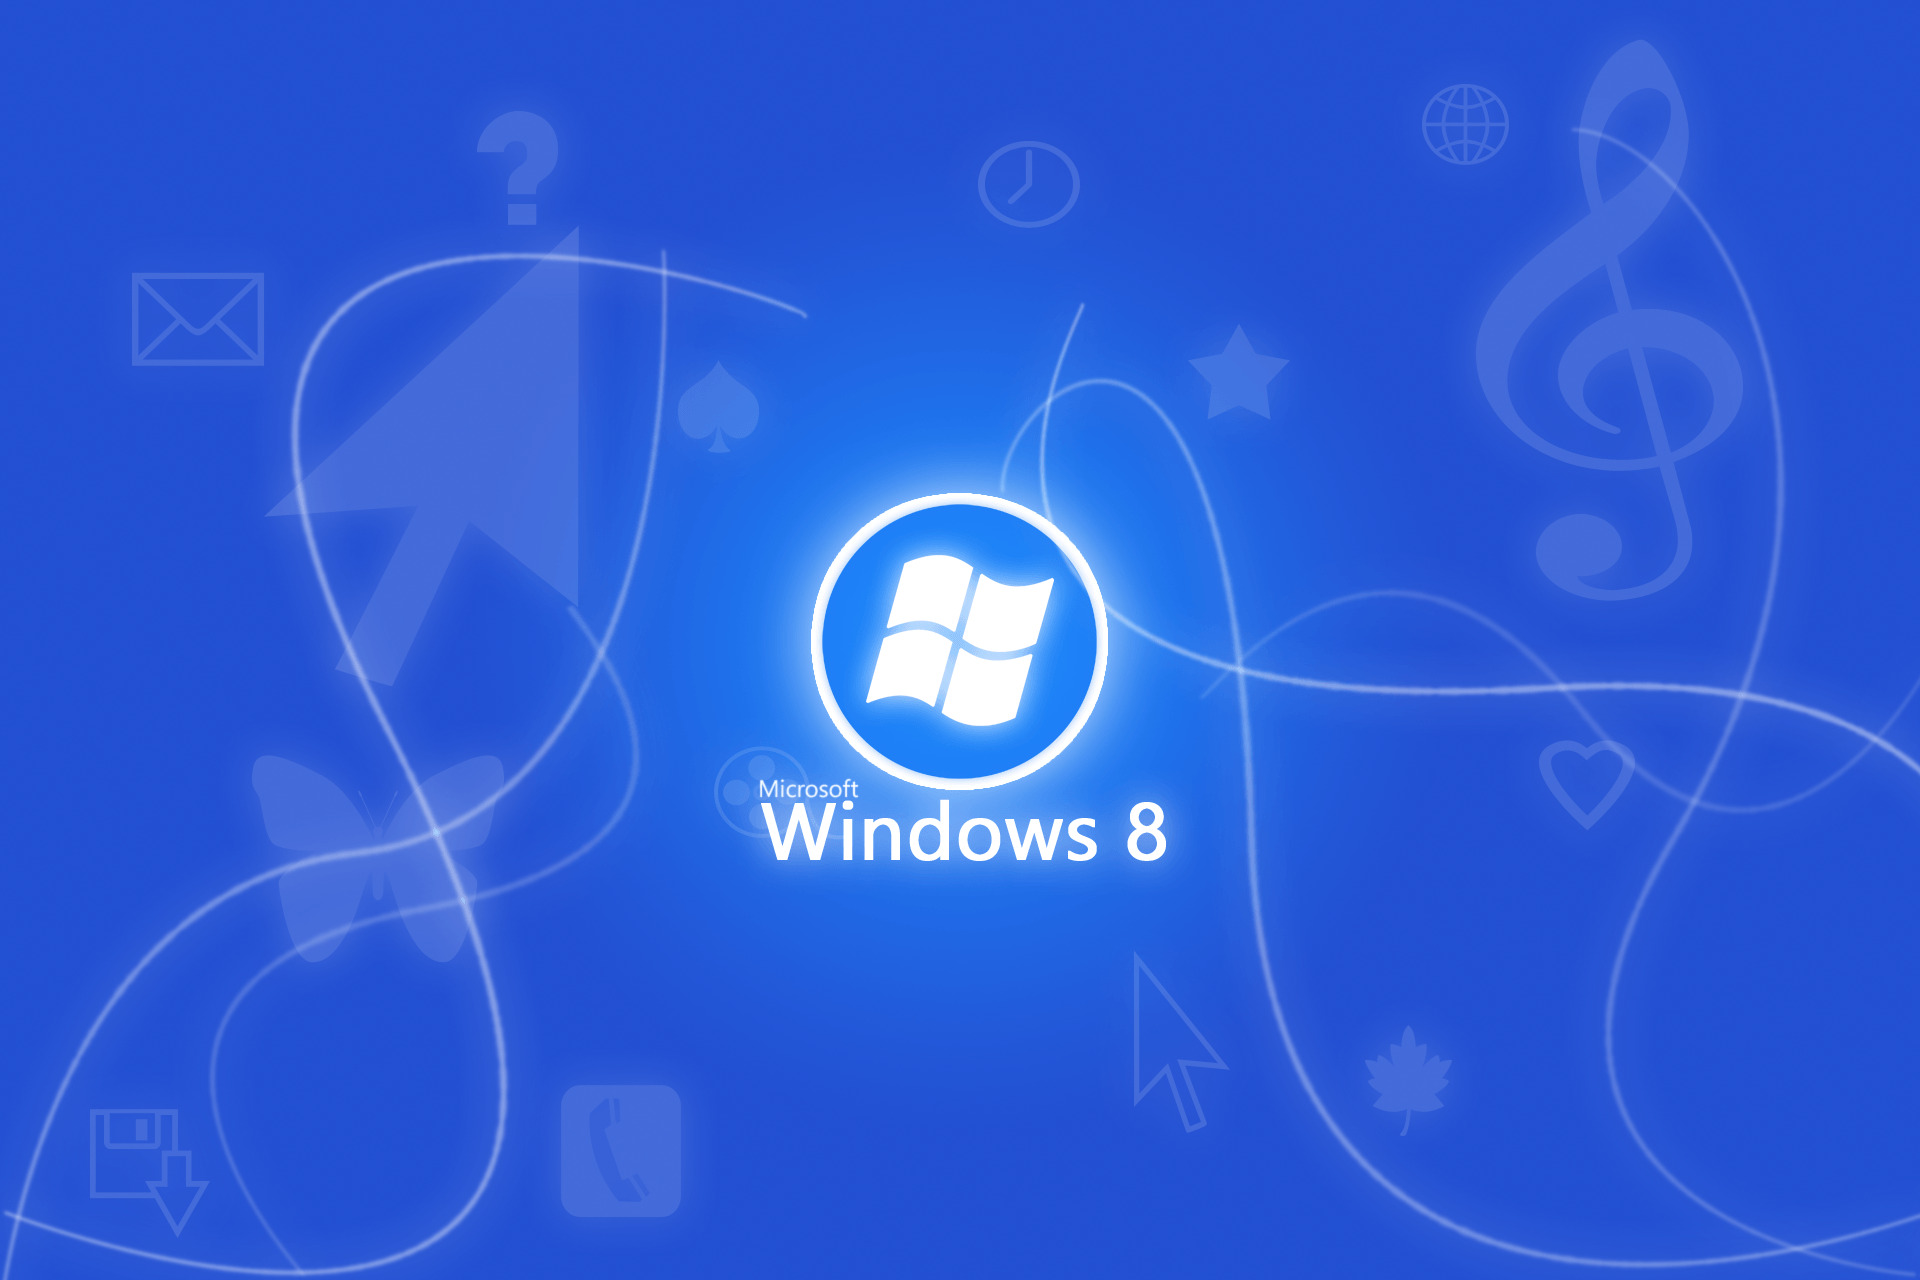 1920x1280 Download these 44 HD Windows 8 Wallpaper Images